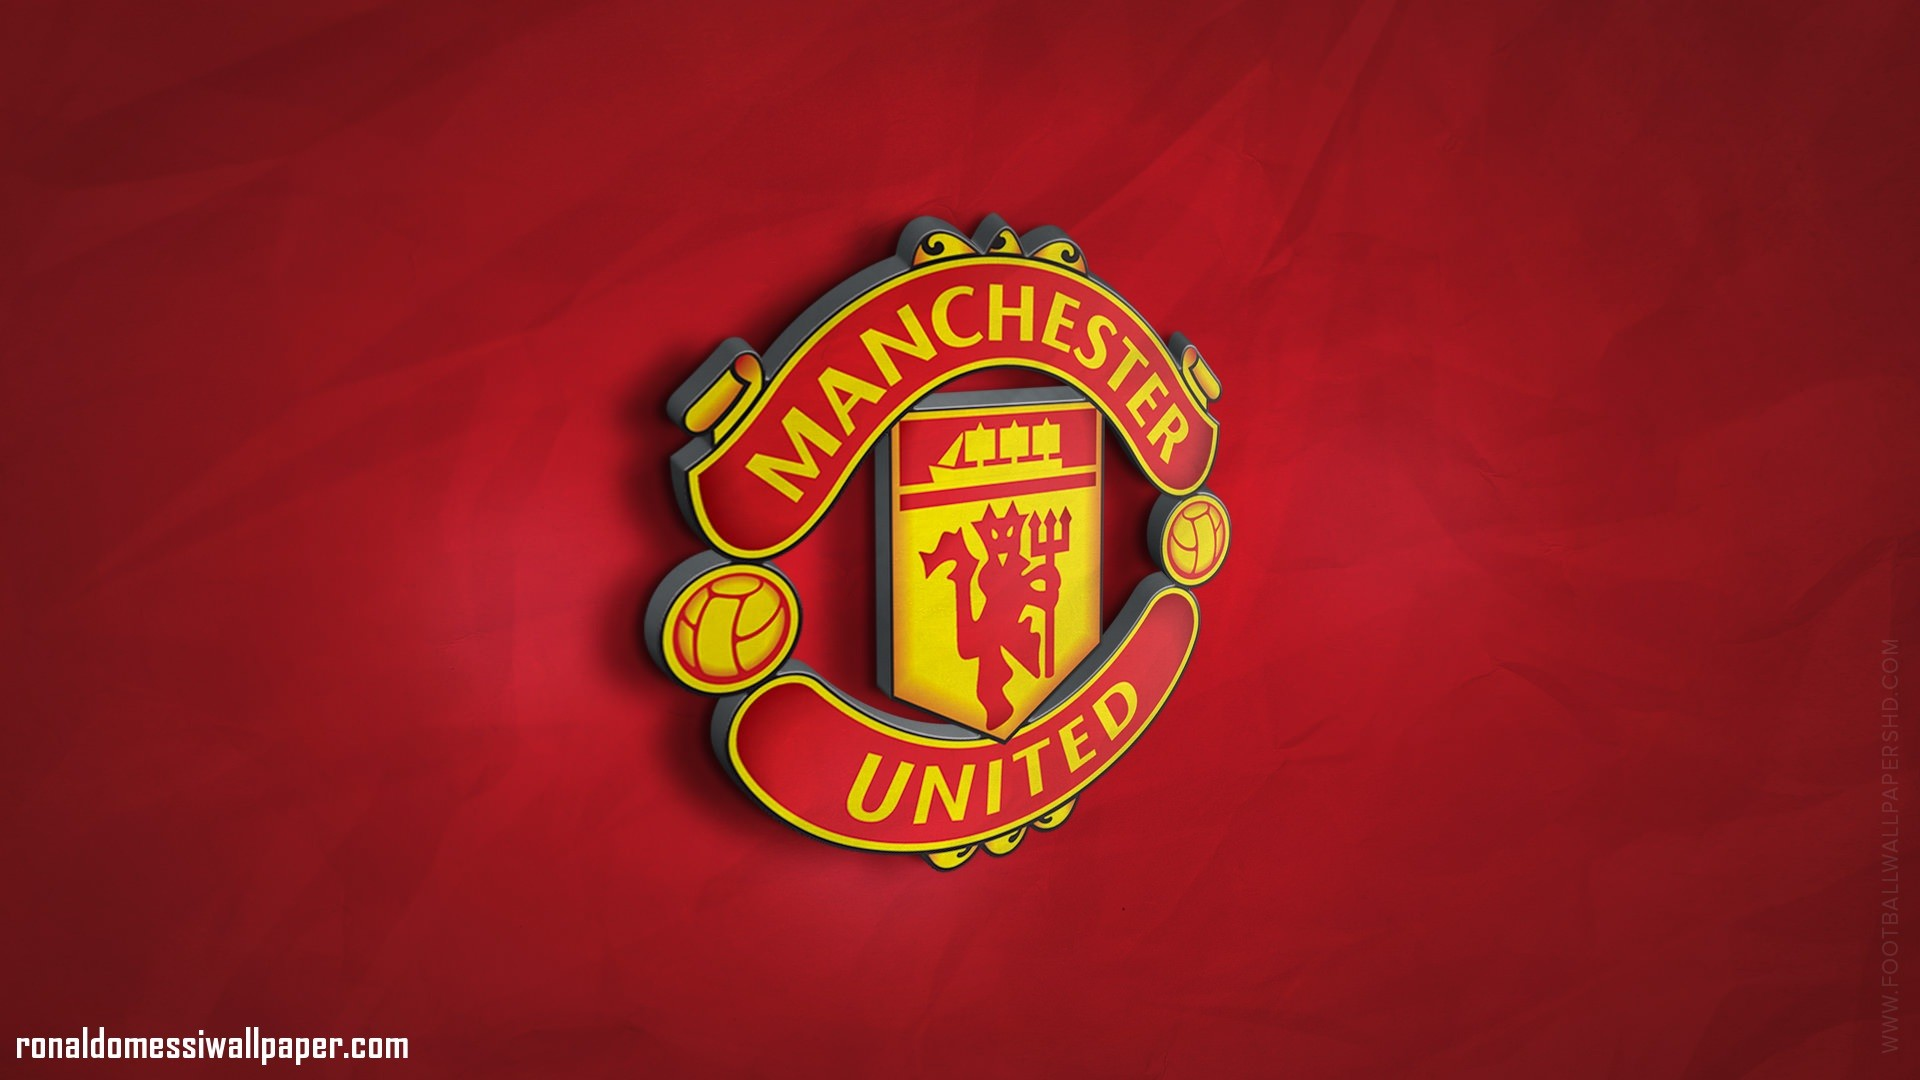 manchester united wallpaper 2018 71 images getwallpapers com